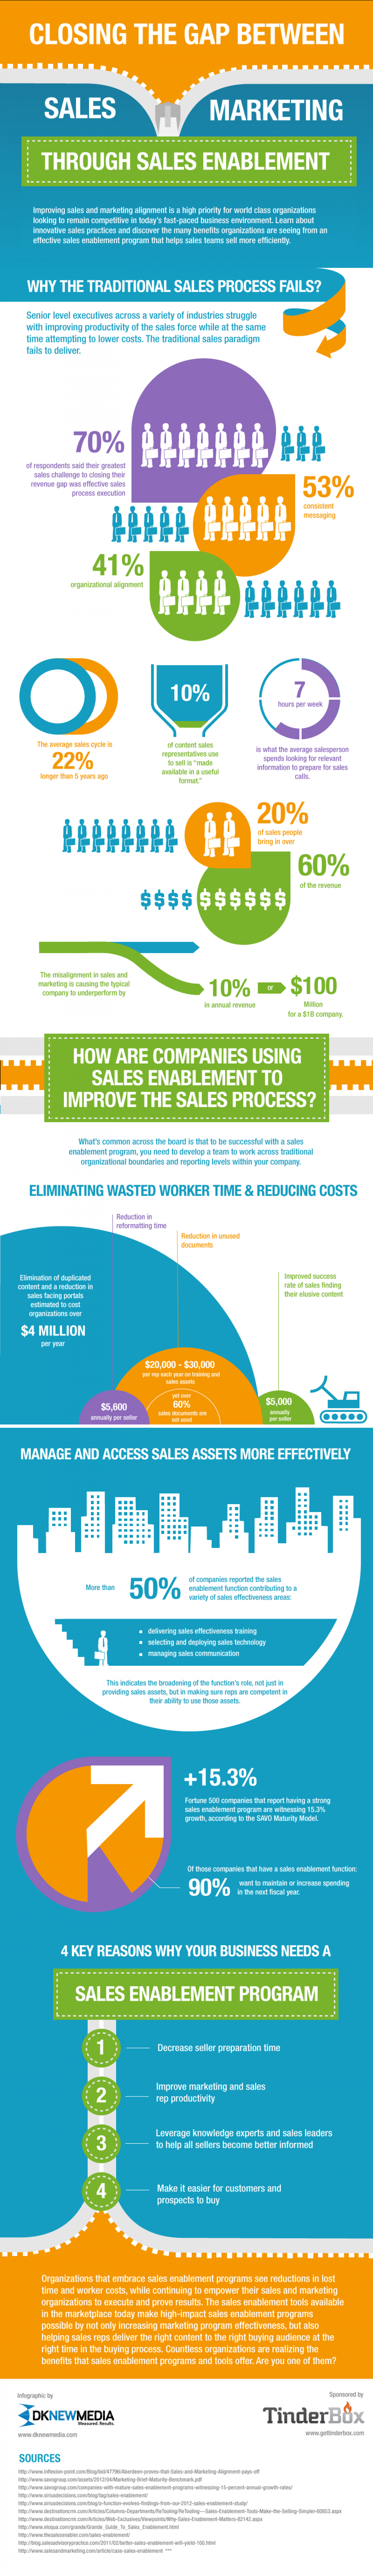 Closing the Gap Between Sales & Marketing Through Sales Enablement Infographic